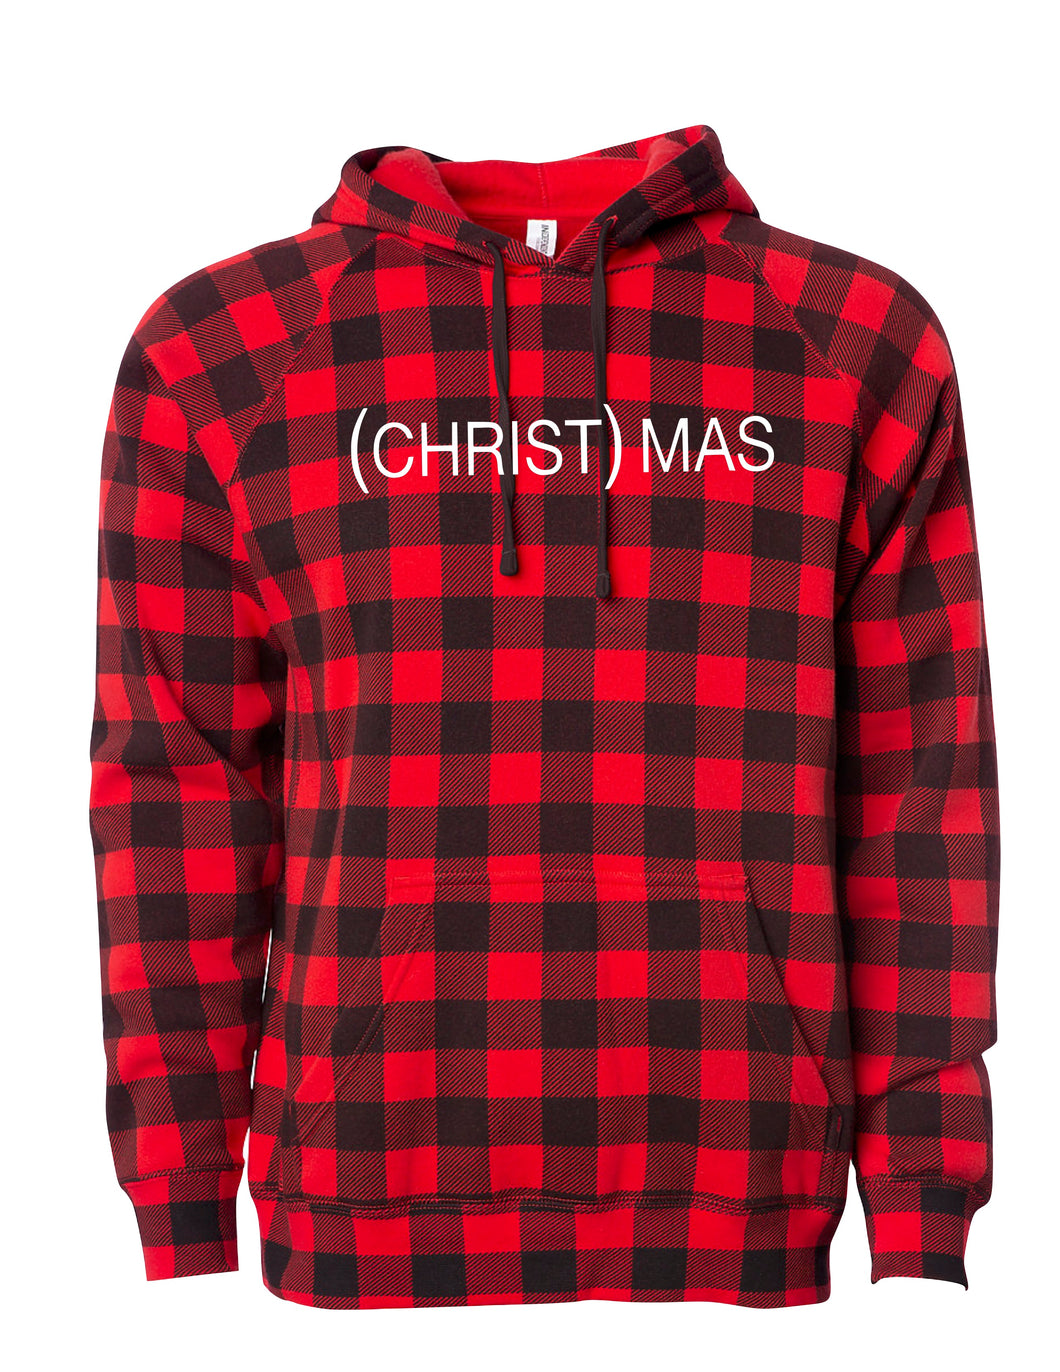 (CHRIST)MAS Plaid Hoody - Unisex